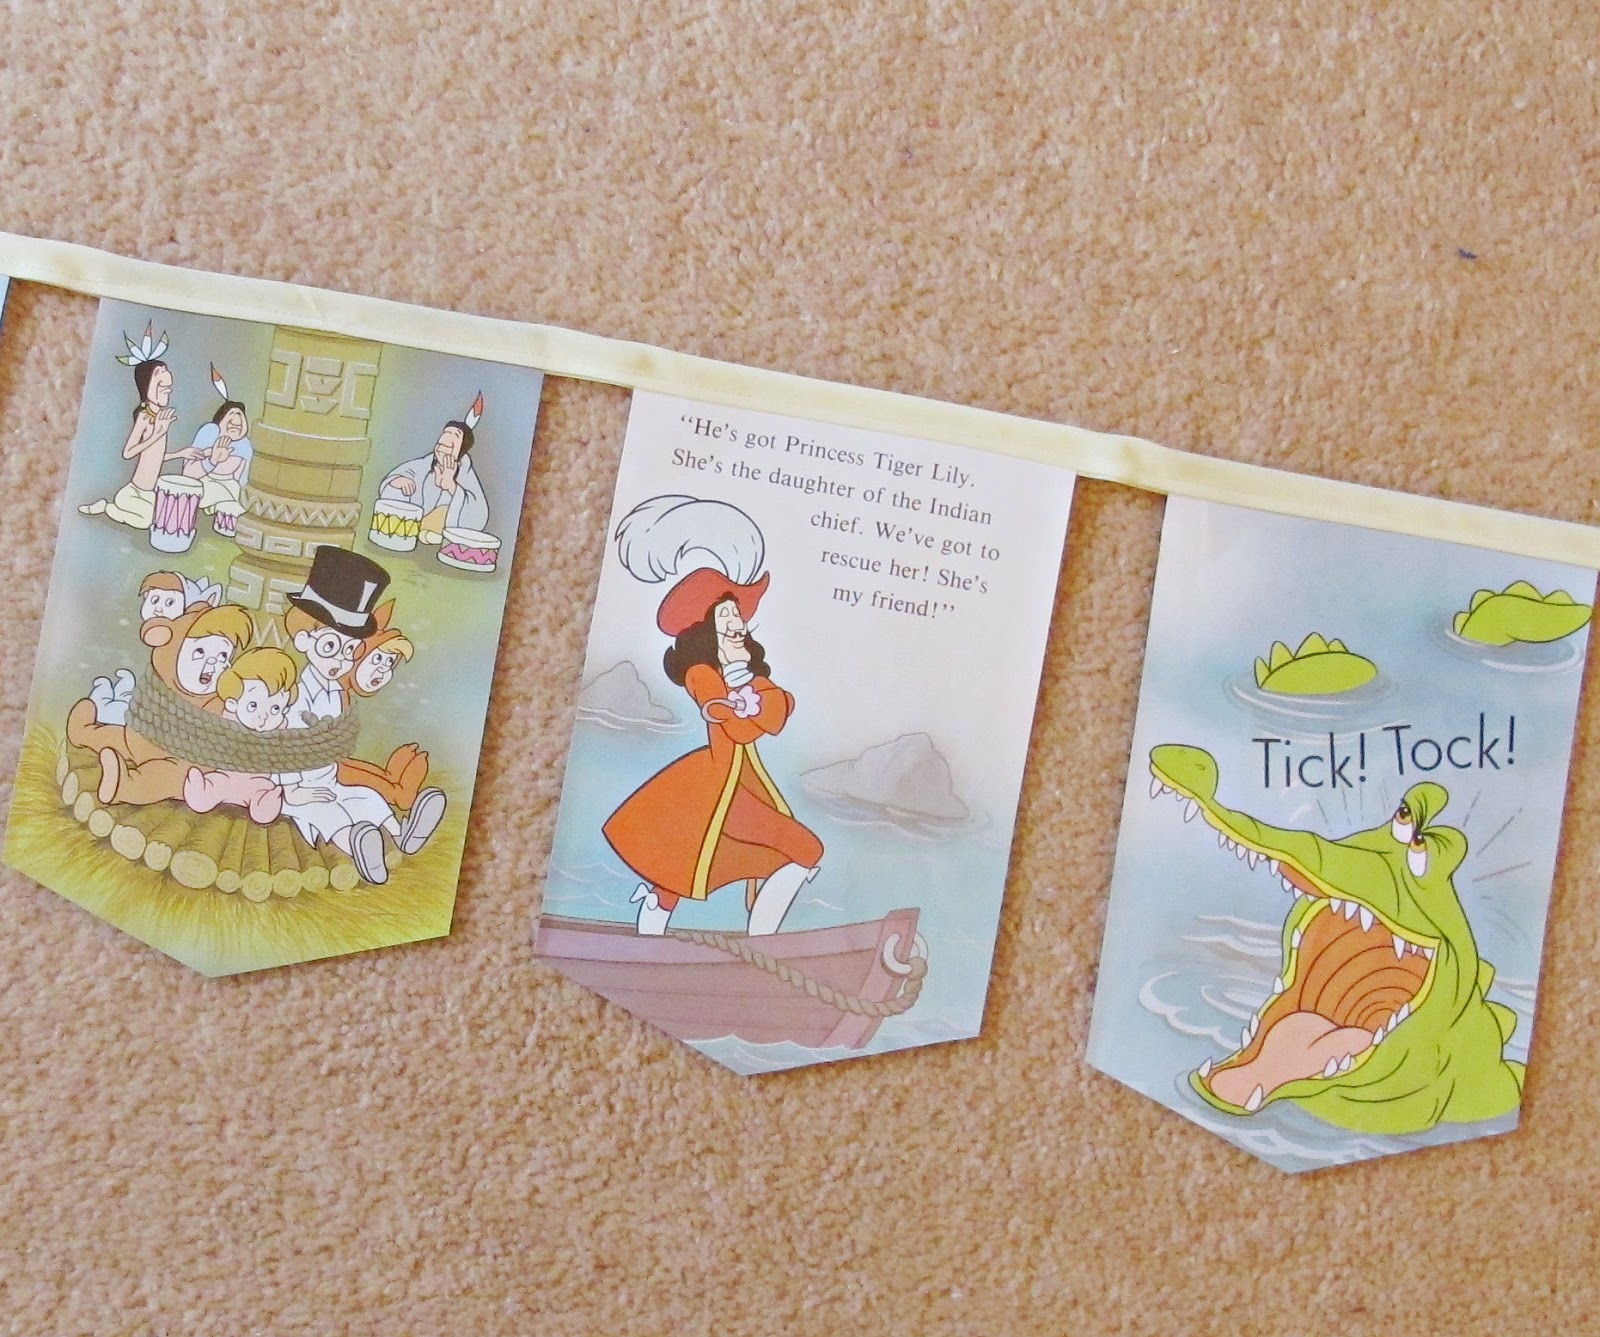 image peter pan bunting lm barrie domum vindemia captain hook crocodile children children's girl's girls boys boy's party decor room nursery baby shower bunting garland disney